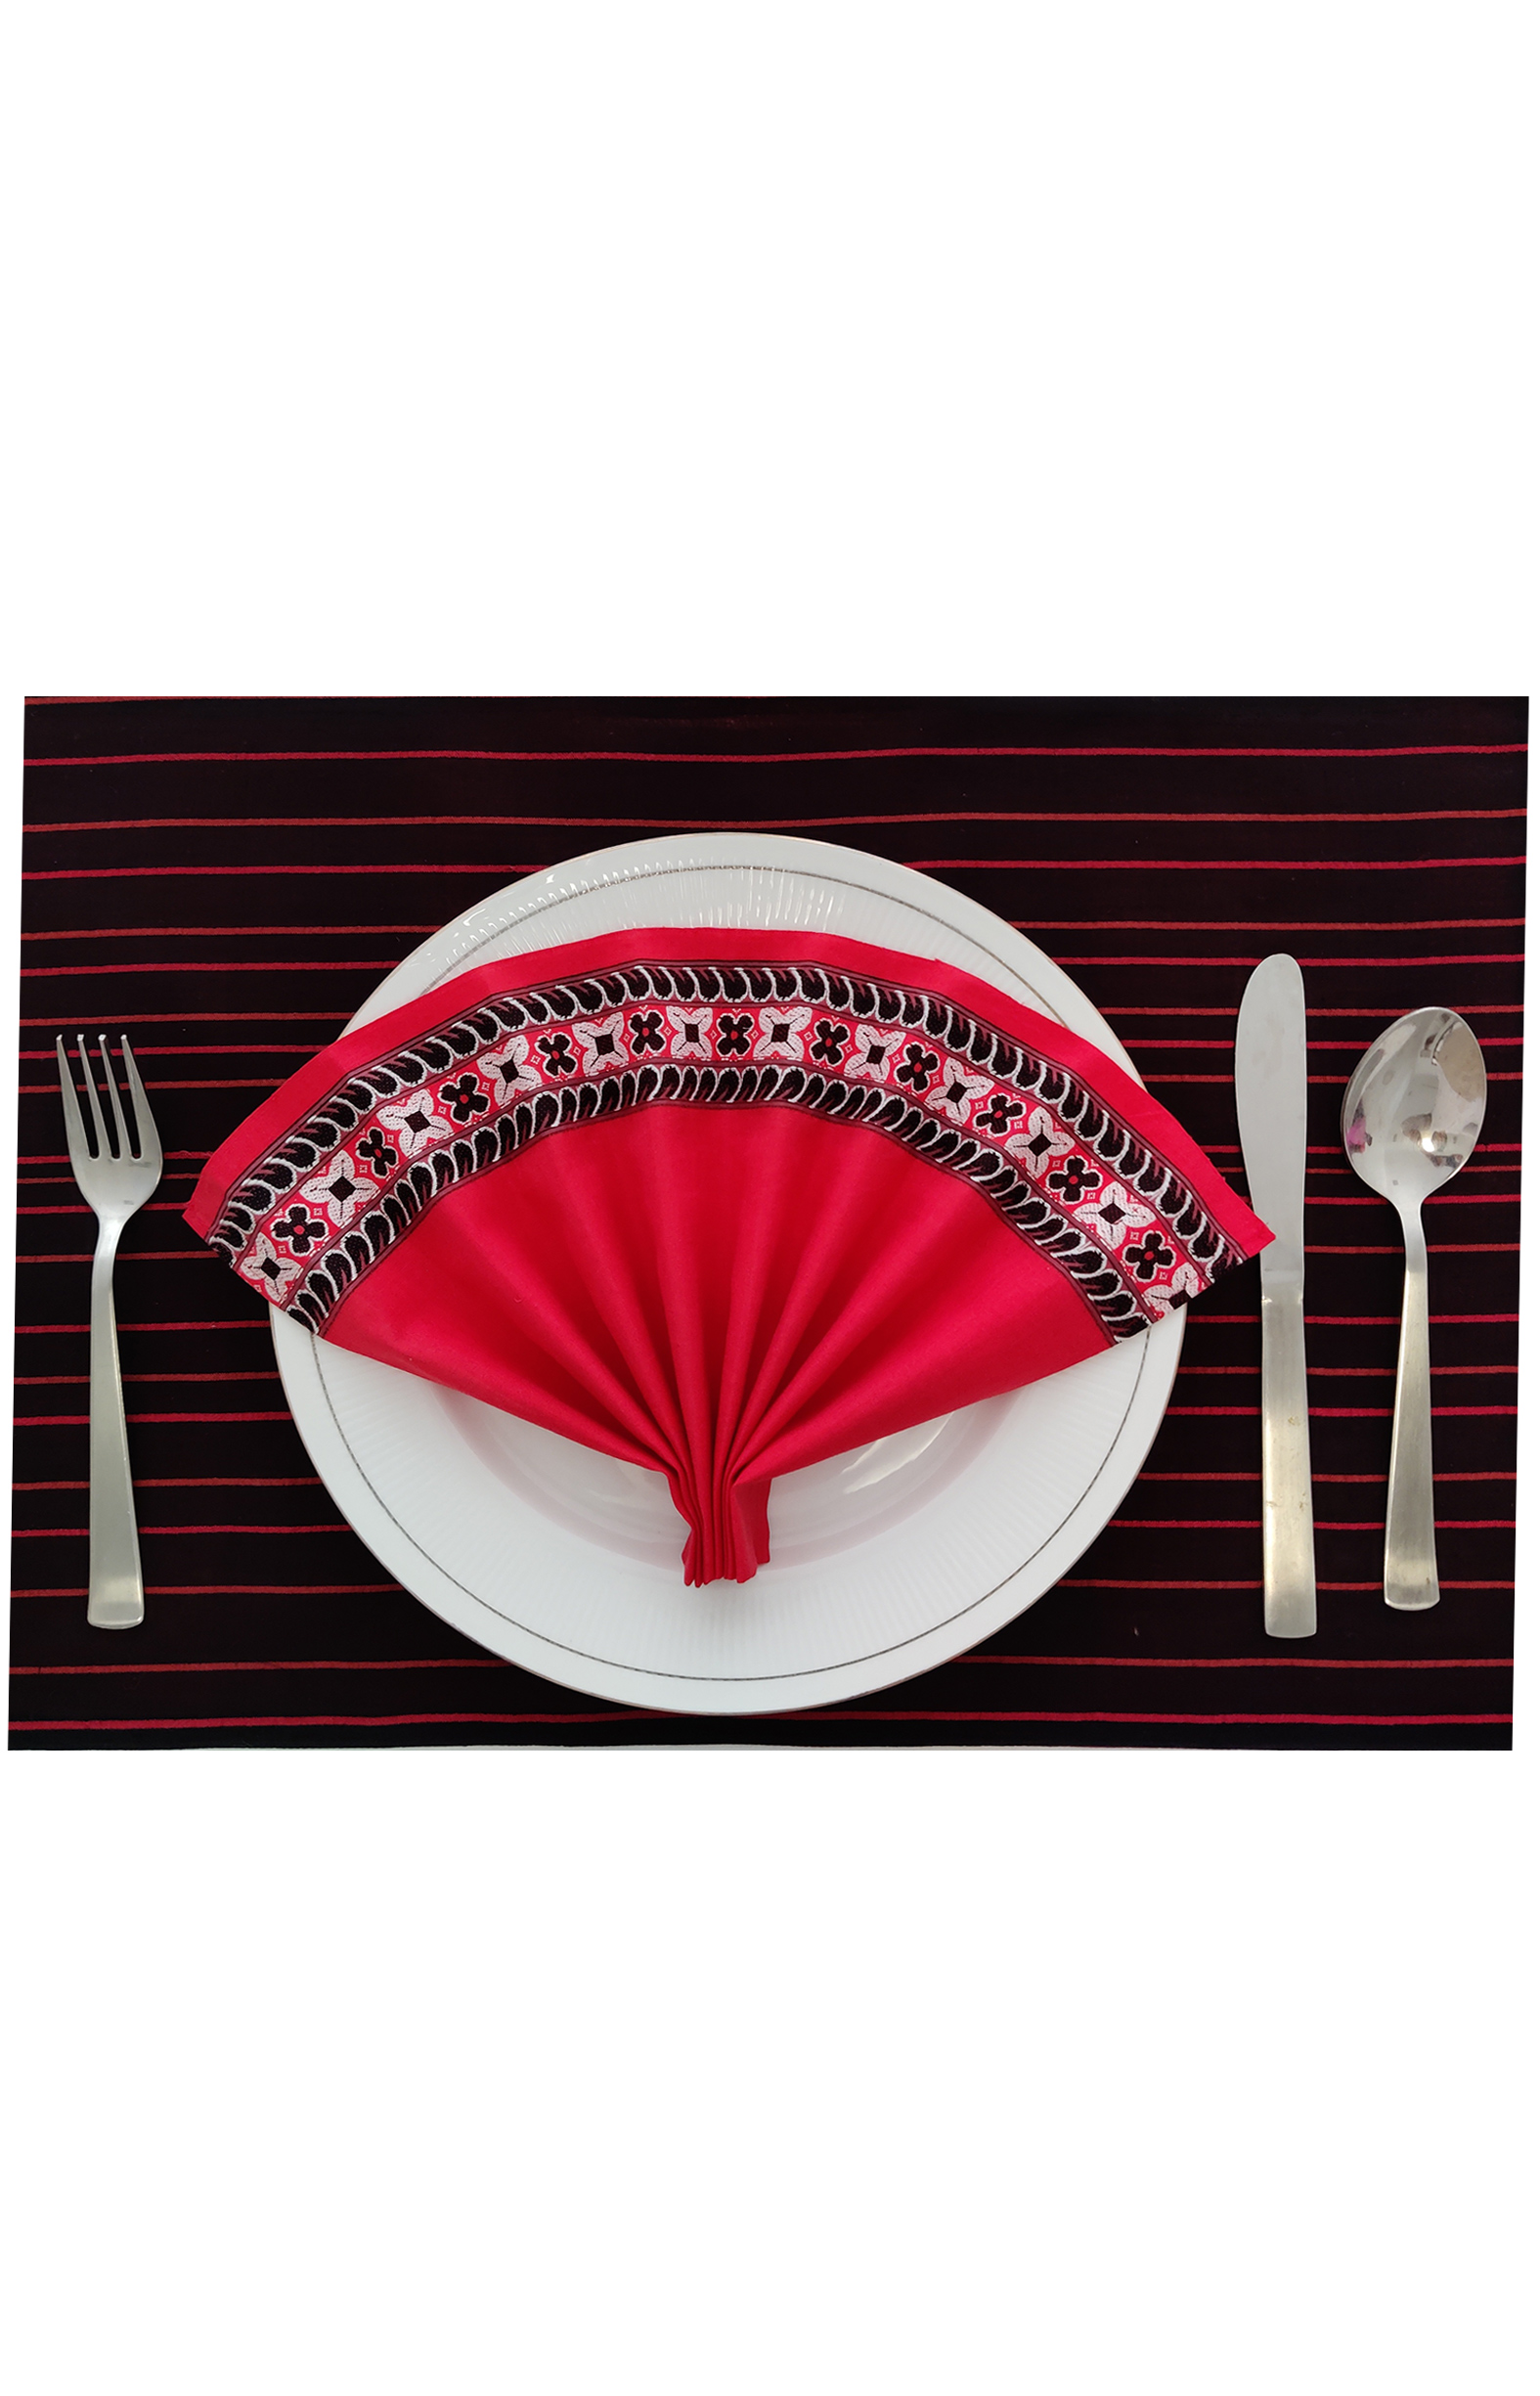 "Handloom Organic Cotton Reversible Placemats - Set of 6 (Size:13"" x 19"")"